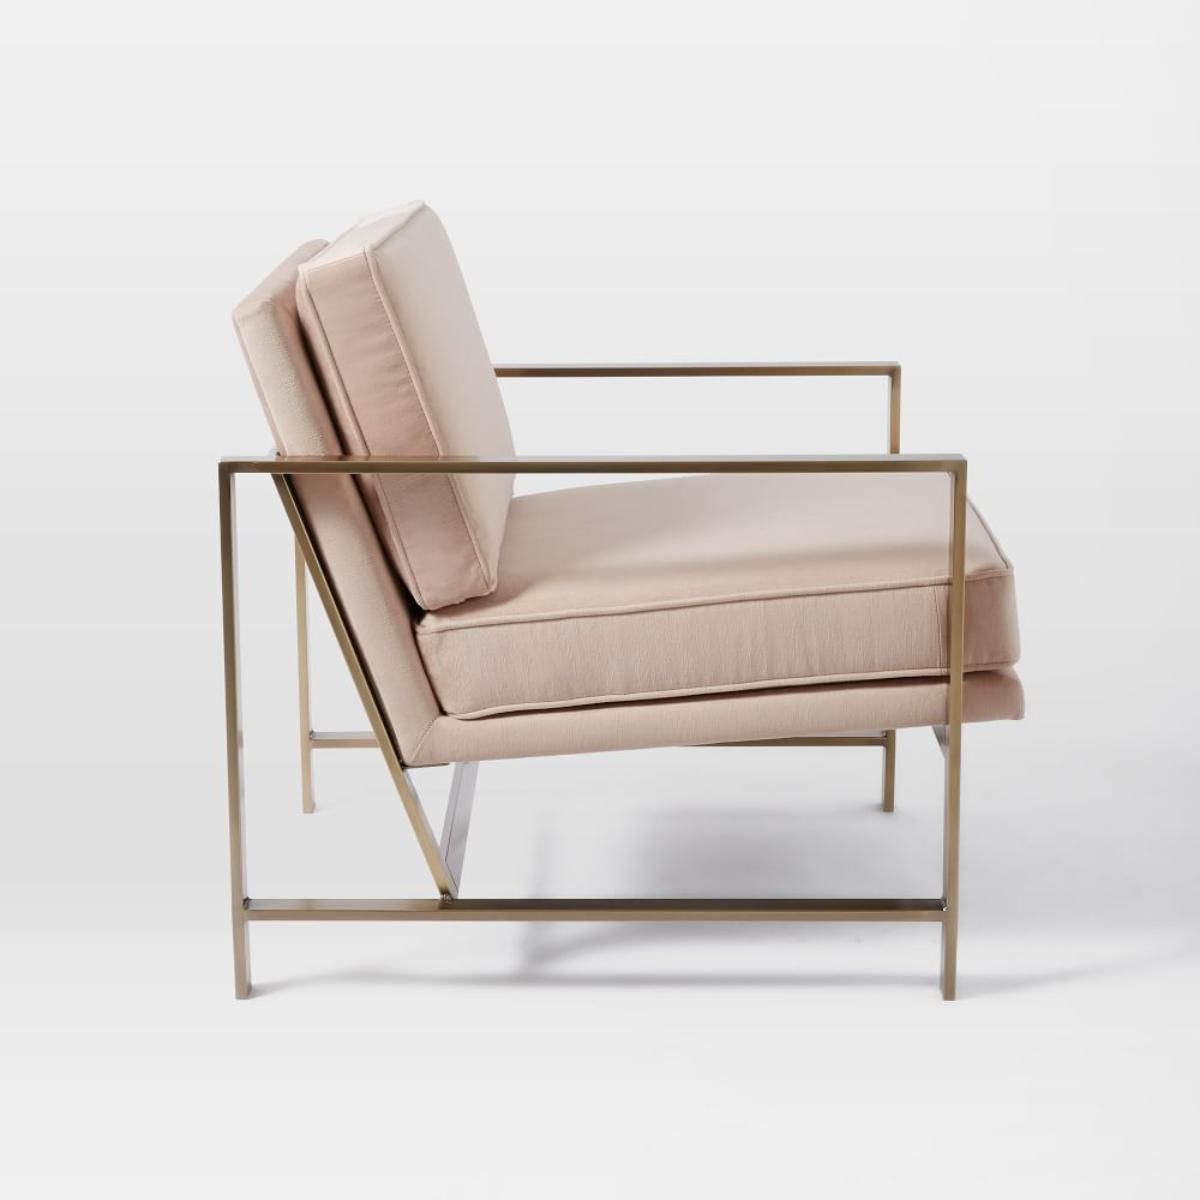 Metal Frame Upholstered Chair   Dusty Blush in 2019 | Home is